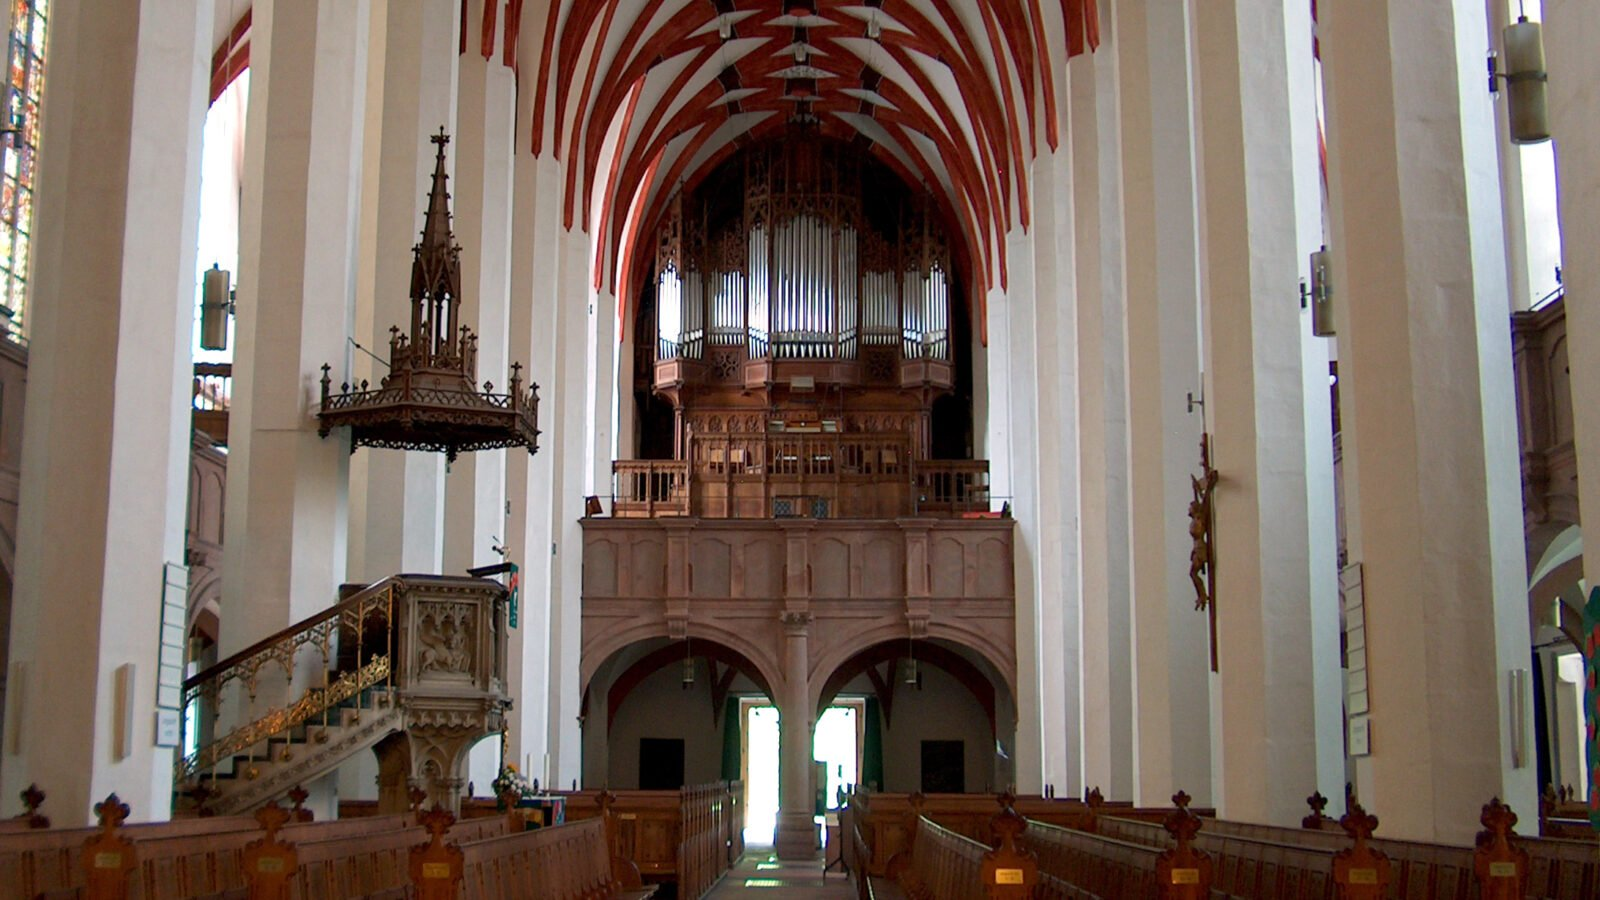 St. Thomas Church in Leipzig, associated with Bach